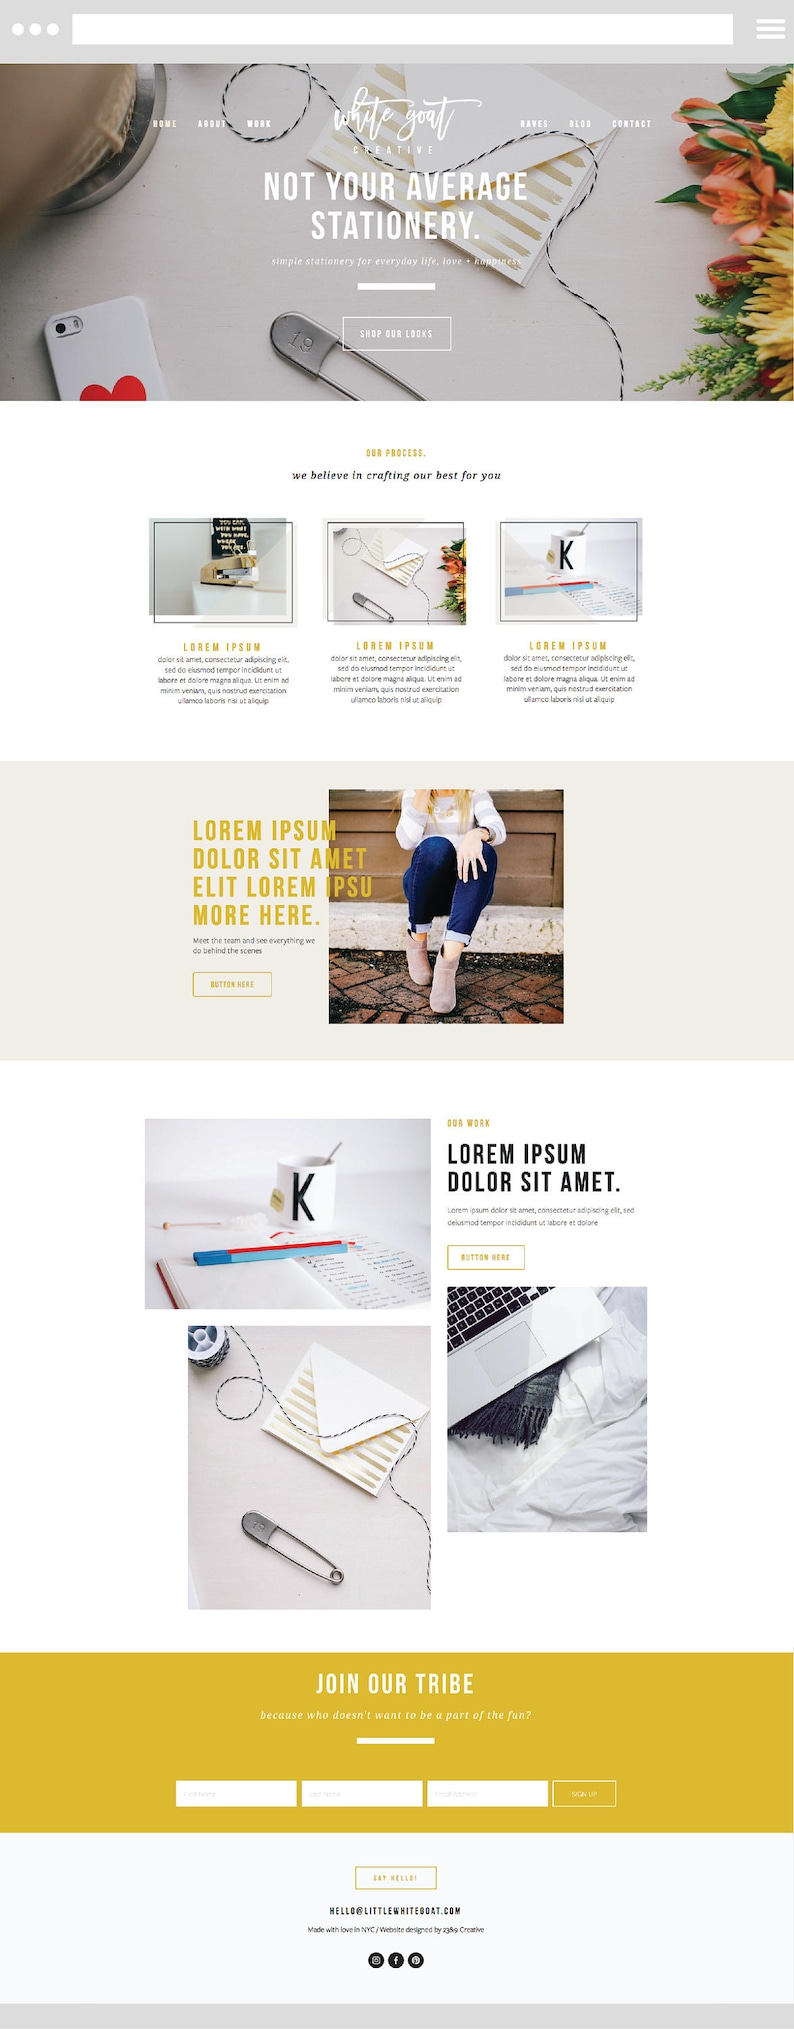 5904bba37b2c5 SQUARESPACE WEBSITE TEMPLATE with Customizable Graphics (no extra  training): The Modern Day Creative